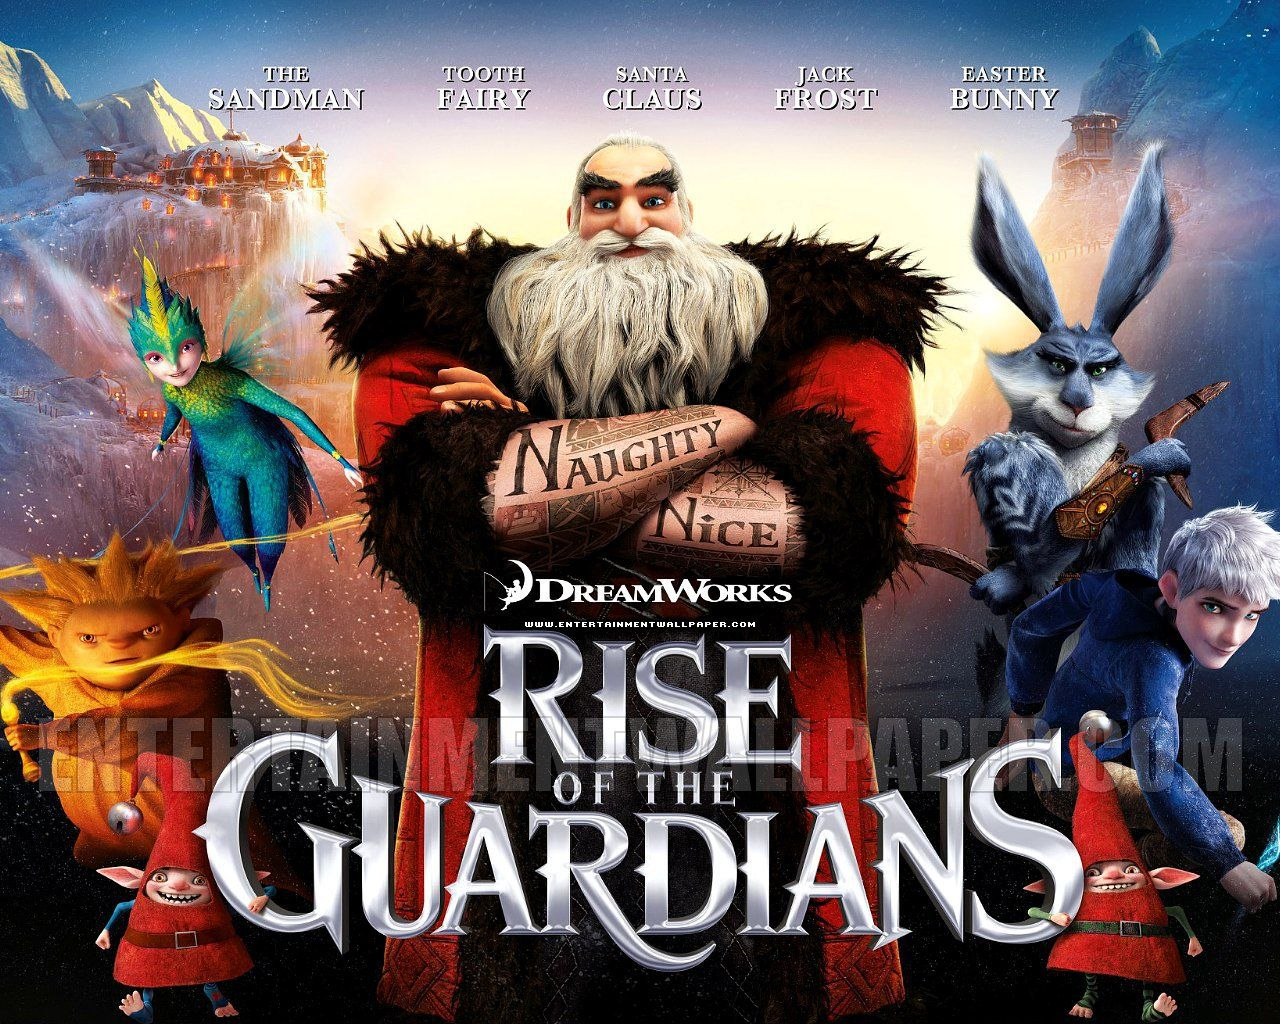 Rise Of The Guardians Wallpaper The Guardian Movie Rise Of The Guardians Movie Wallpapers